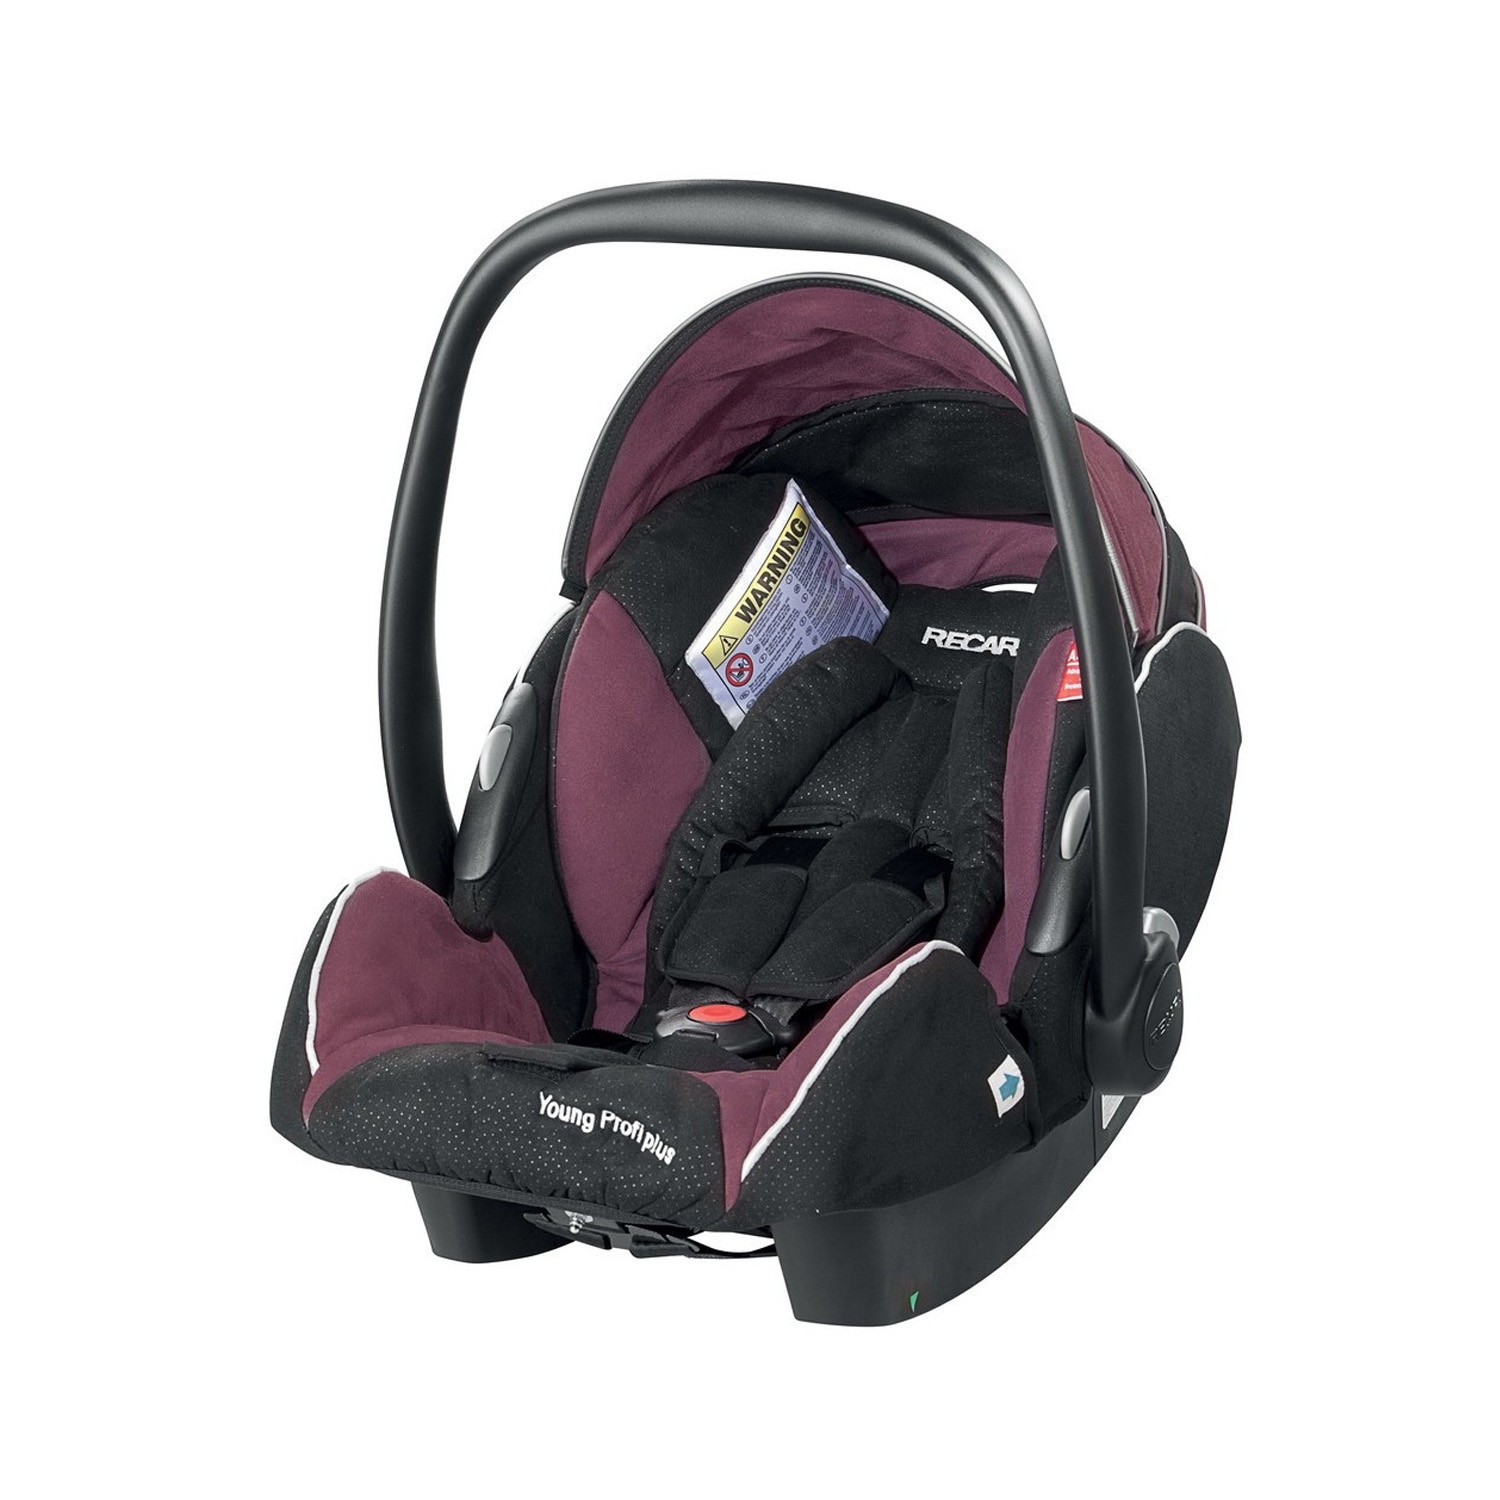 recaro car seat young profi plus latest news car. Black Bedroom Furniture Sets. Home Design Ideas